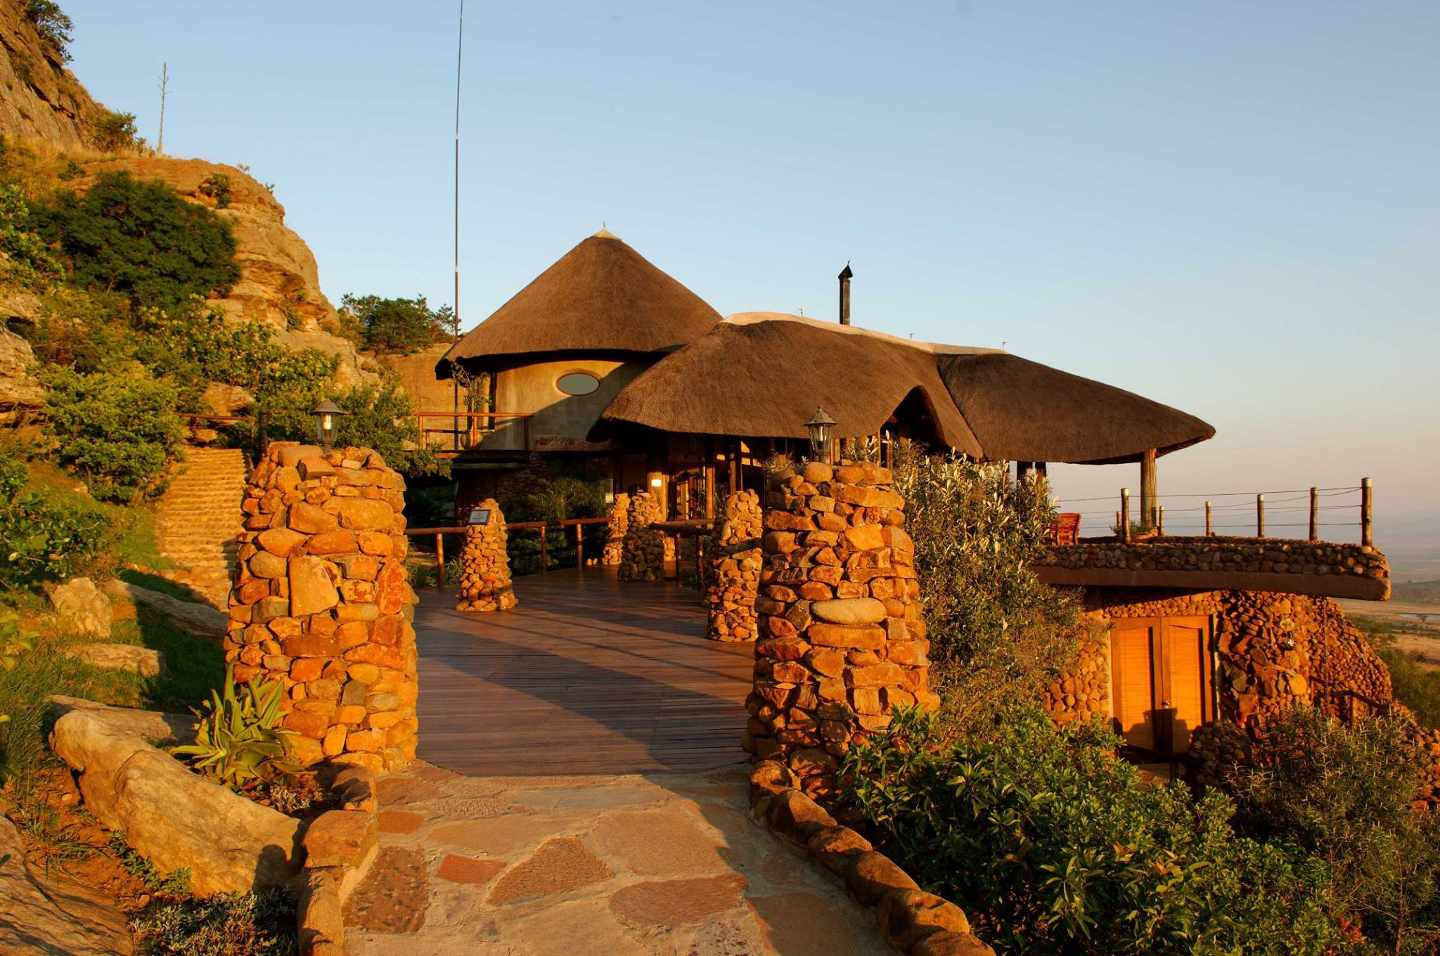 Dundee South Africa  City new picture : Isandlwana Lodge, Dundee, South Africa